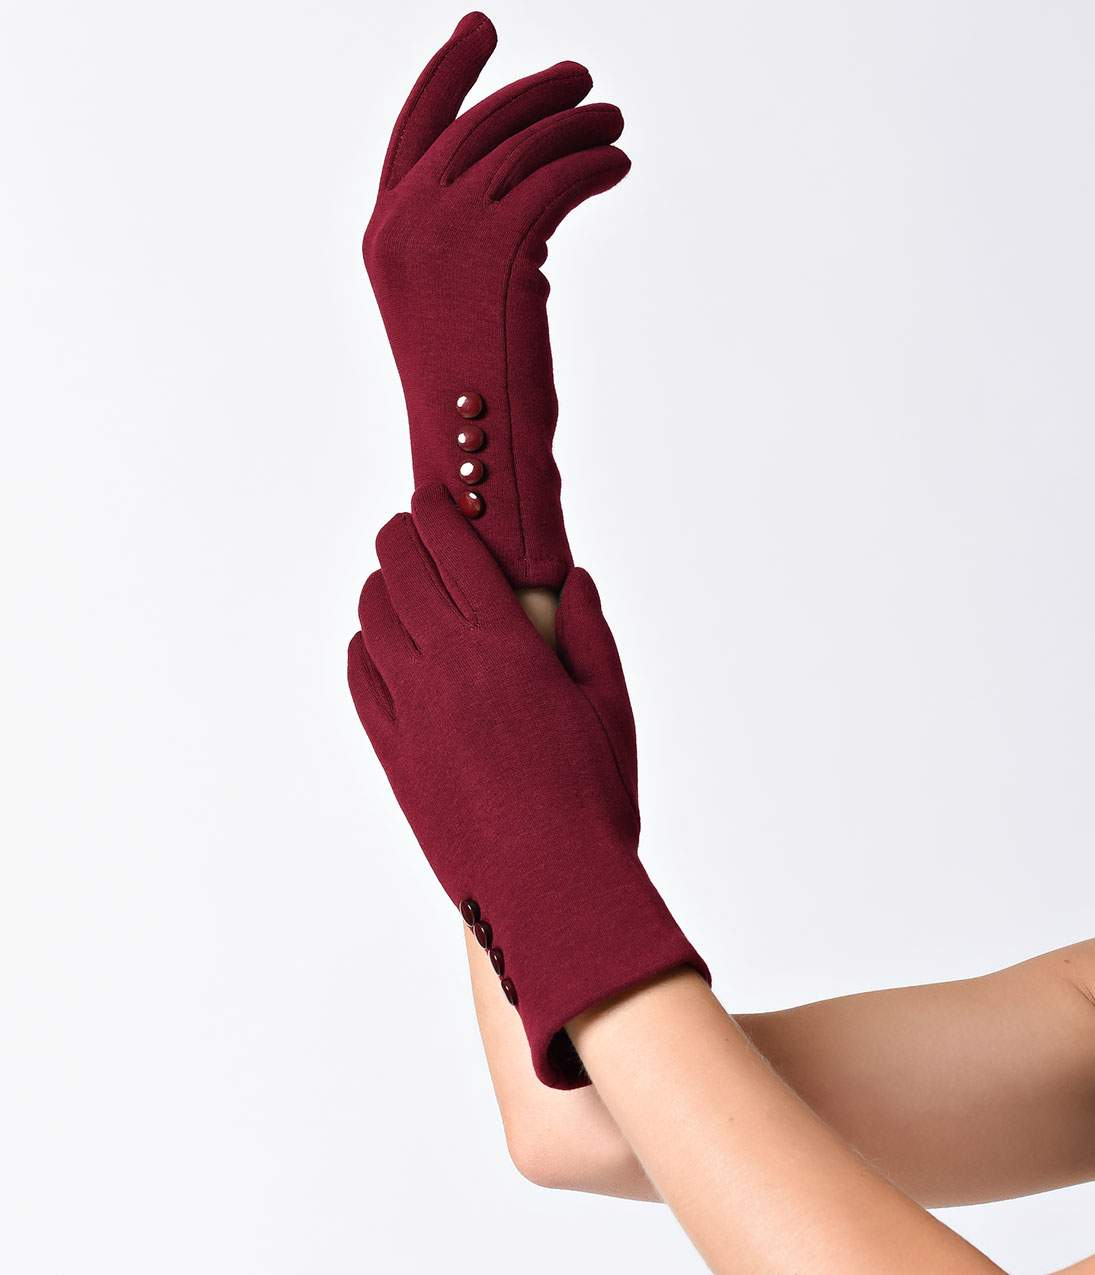 Vintage Gloves – Styles from 1900 to 1960s Red Wrist Length Buttons Texting Gloves $18.00 AT vintagedancer.com